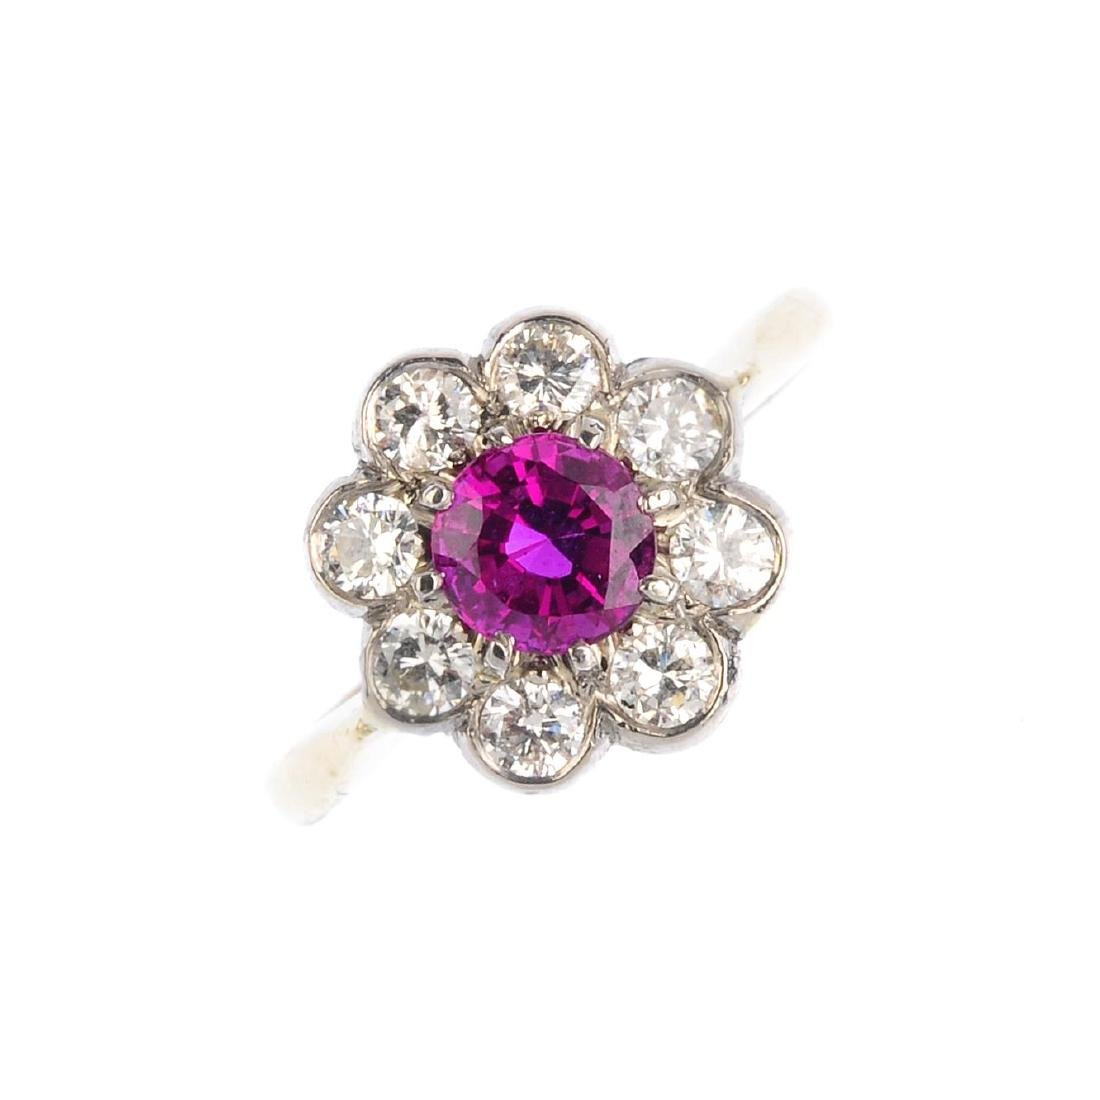 An 18ct gold Thai ruby and diamond cluster ring. The